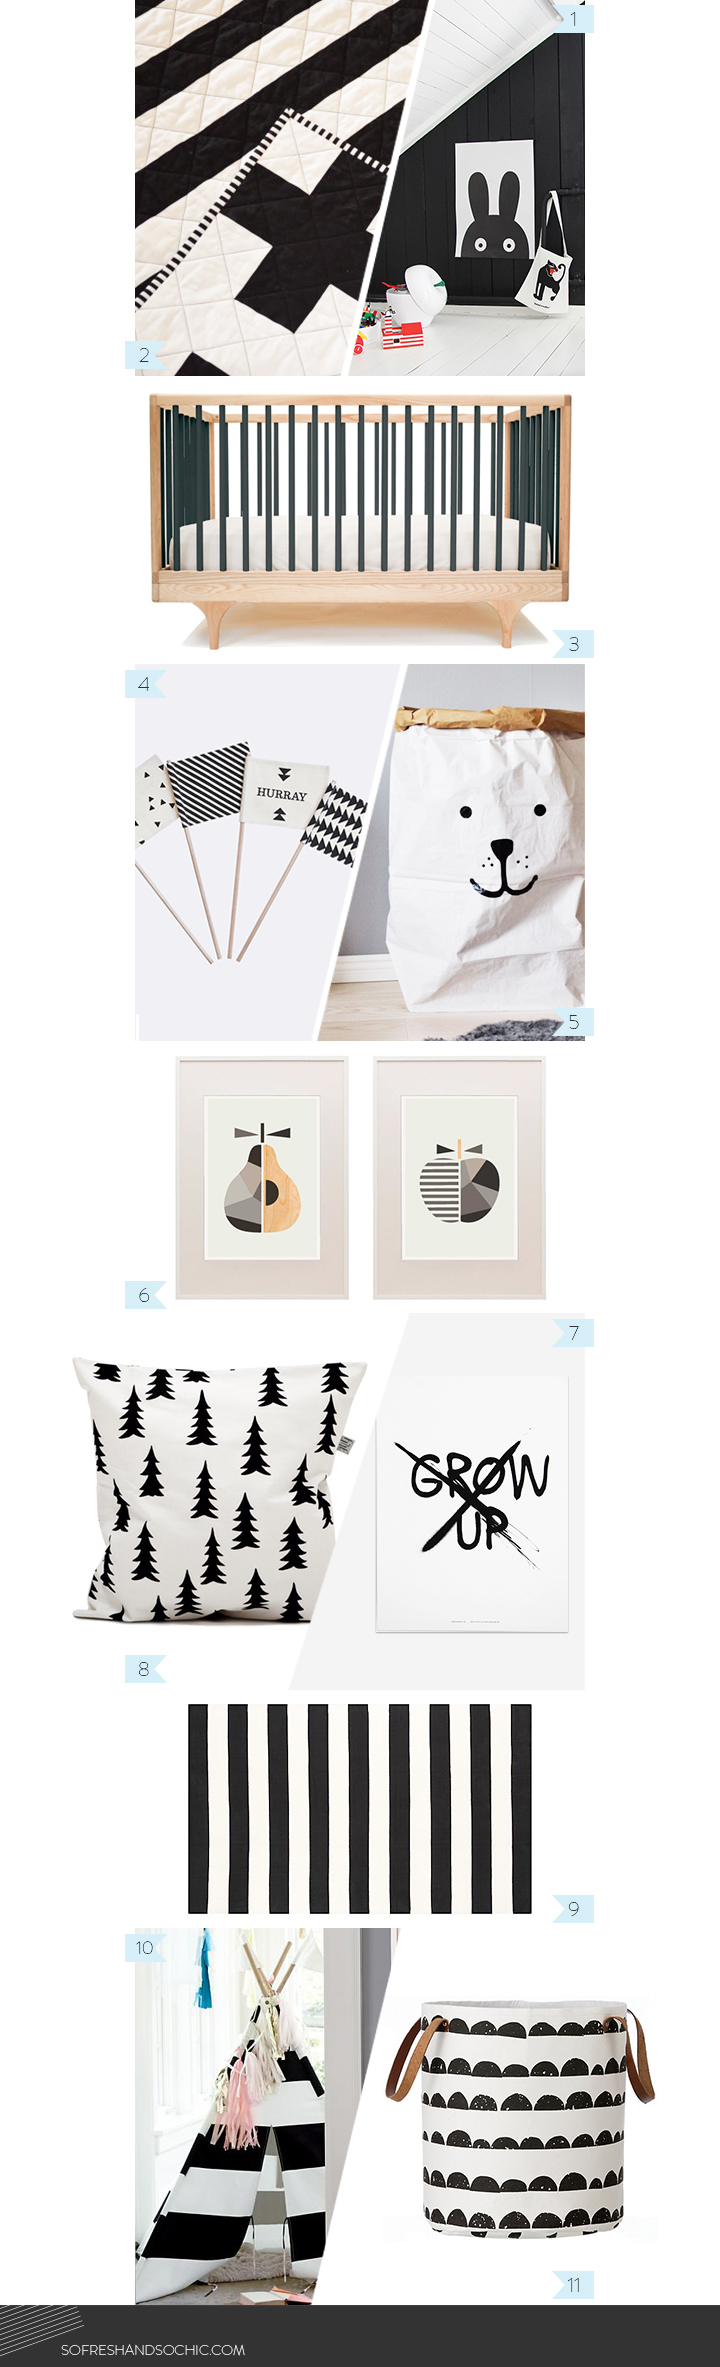 So Fresh and So Chic // Petit amour // Love, Maman // The best curated children's good // Black and White Scandinavian Style